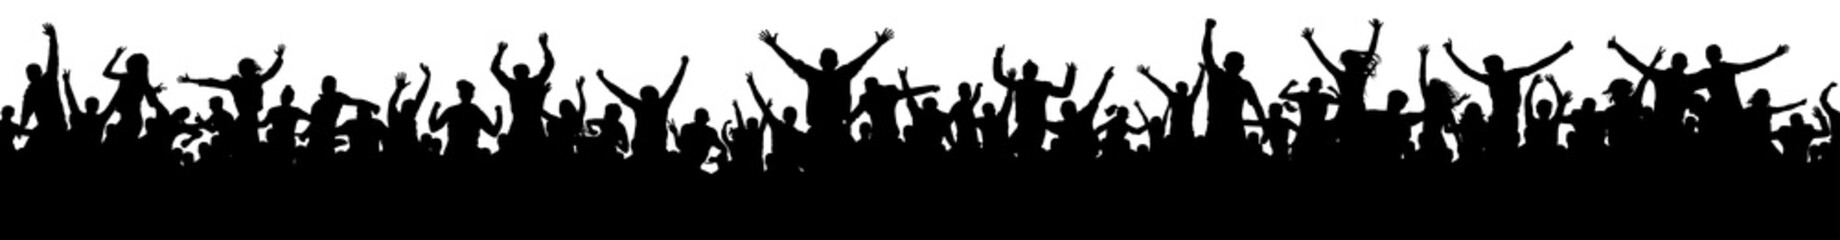 Seamless crowd of fun people on party, holiday. Cheerful people having fun celebrating. Sporting event. Applause people hands up. Silhouette Vector Illustration